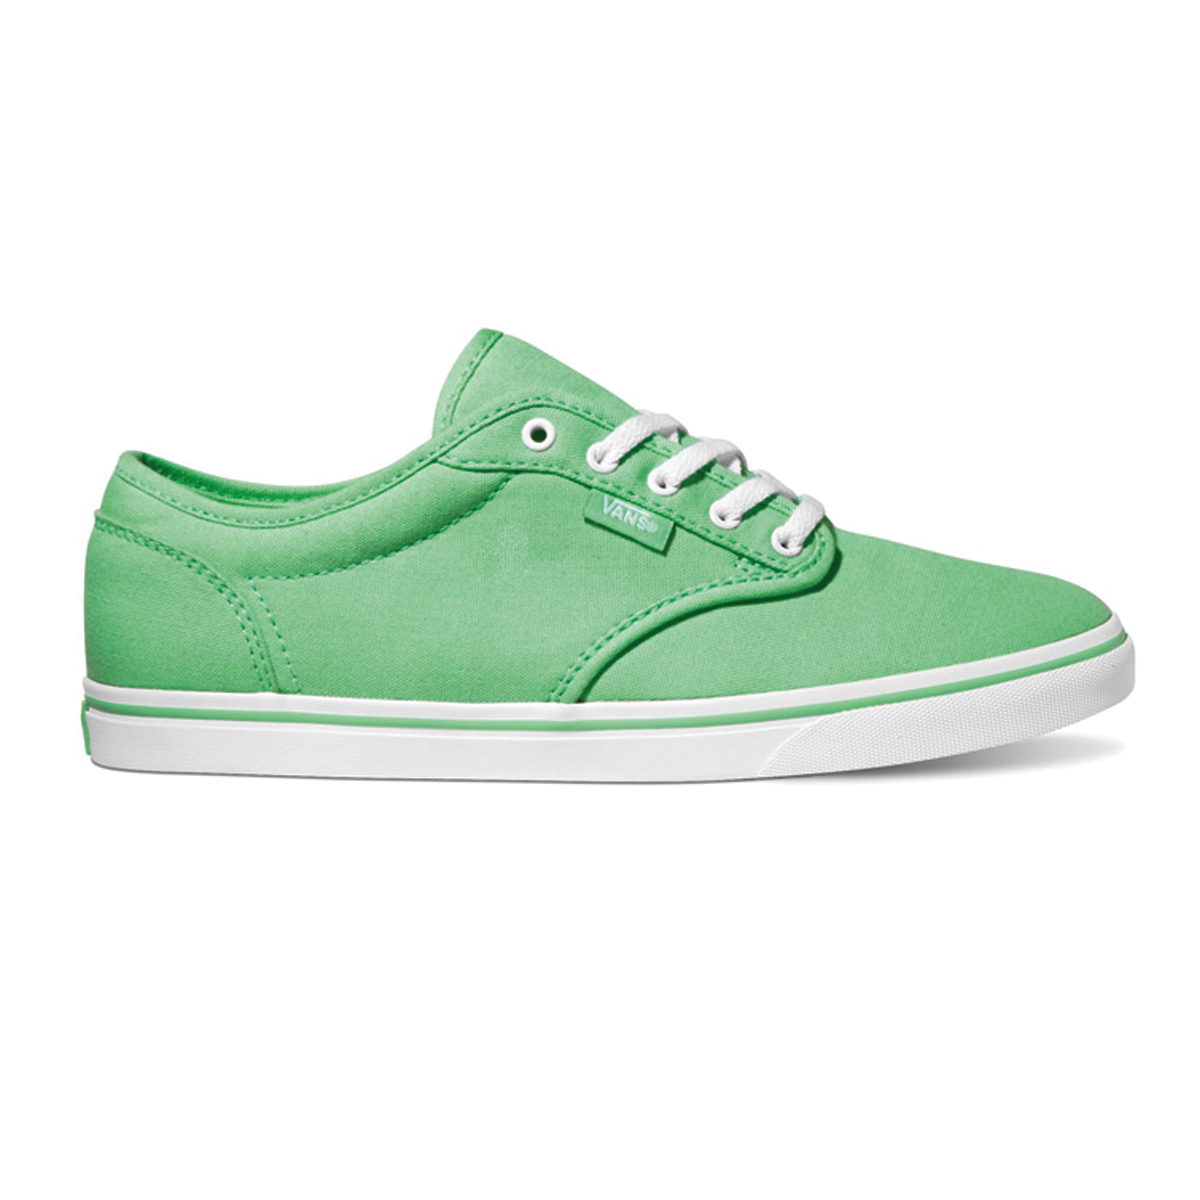 b1d95d633f Vans Womens Atwood Low Shoes 2014